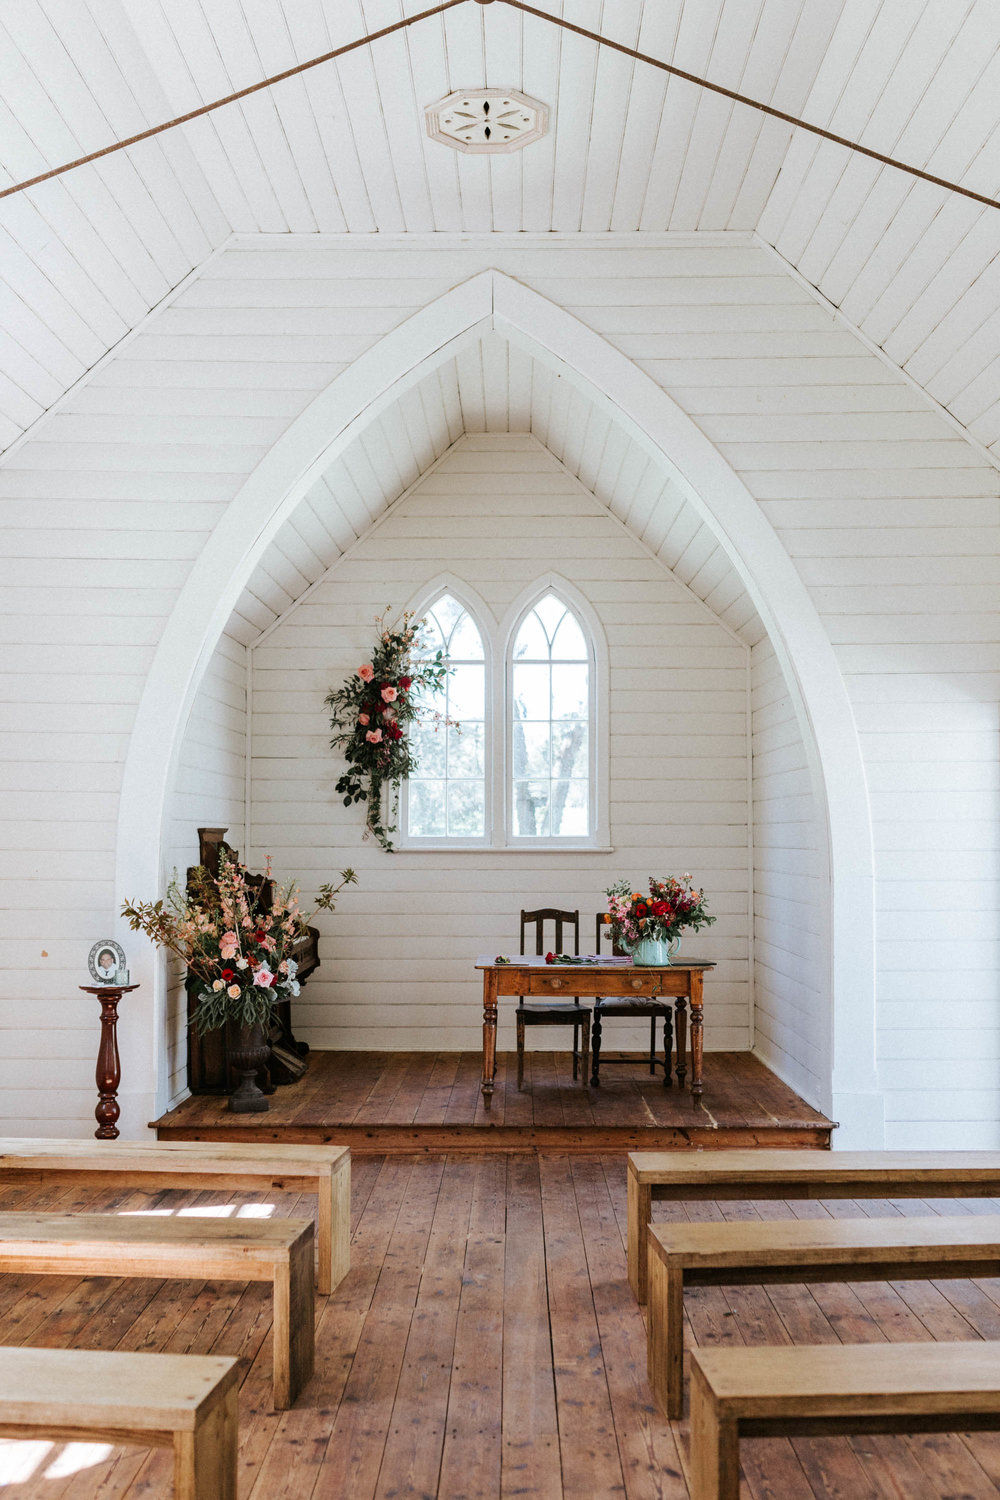 The Little Church, Spring Hill - Country Victoria wedding venue